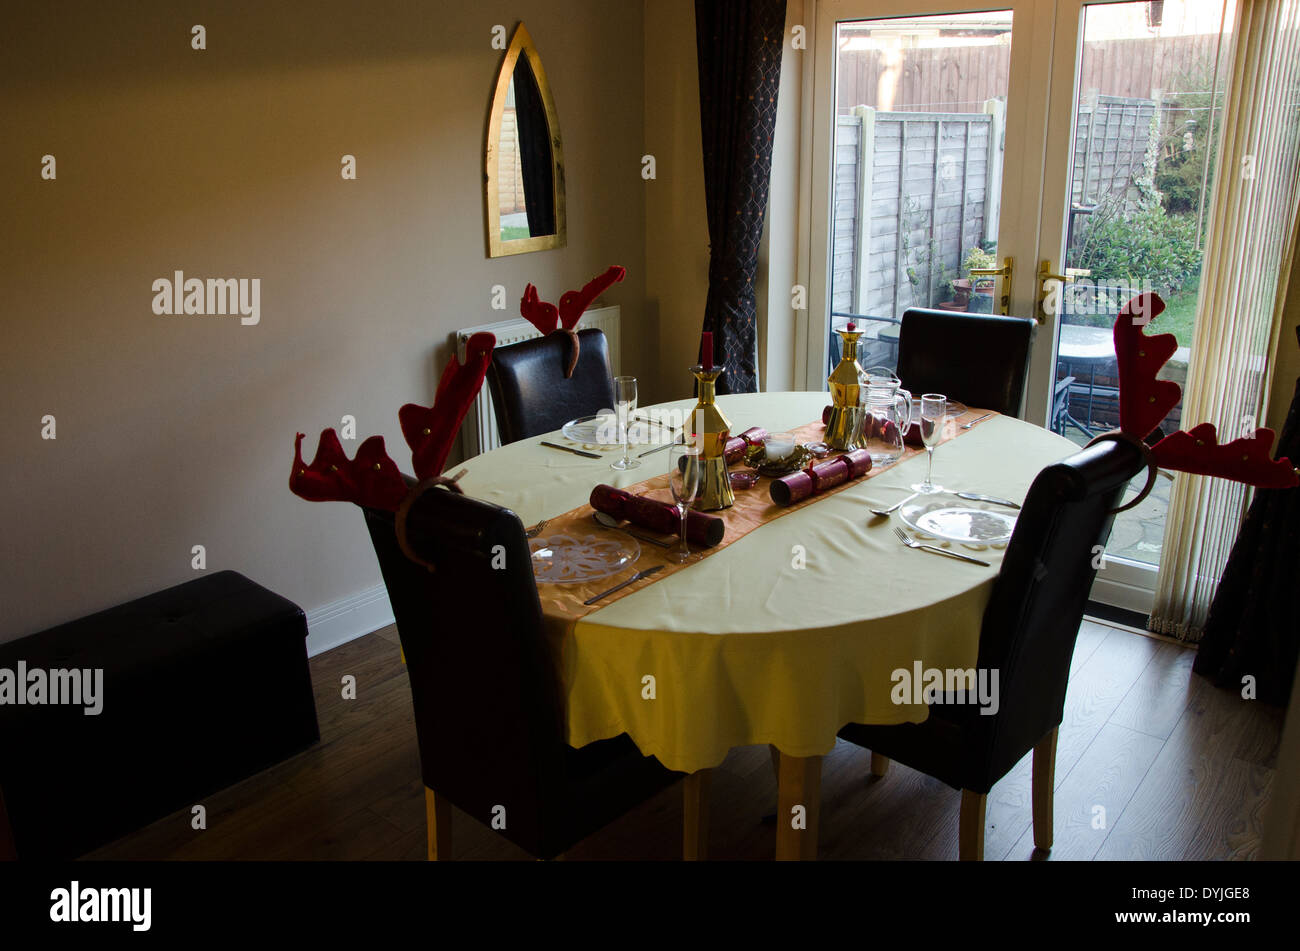 Dining table . Places set ready for Christmas meal - Stock Image